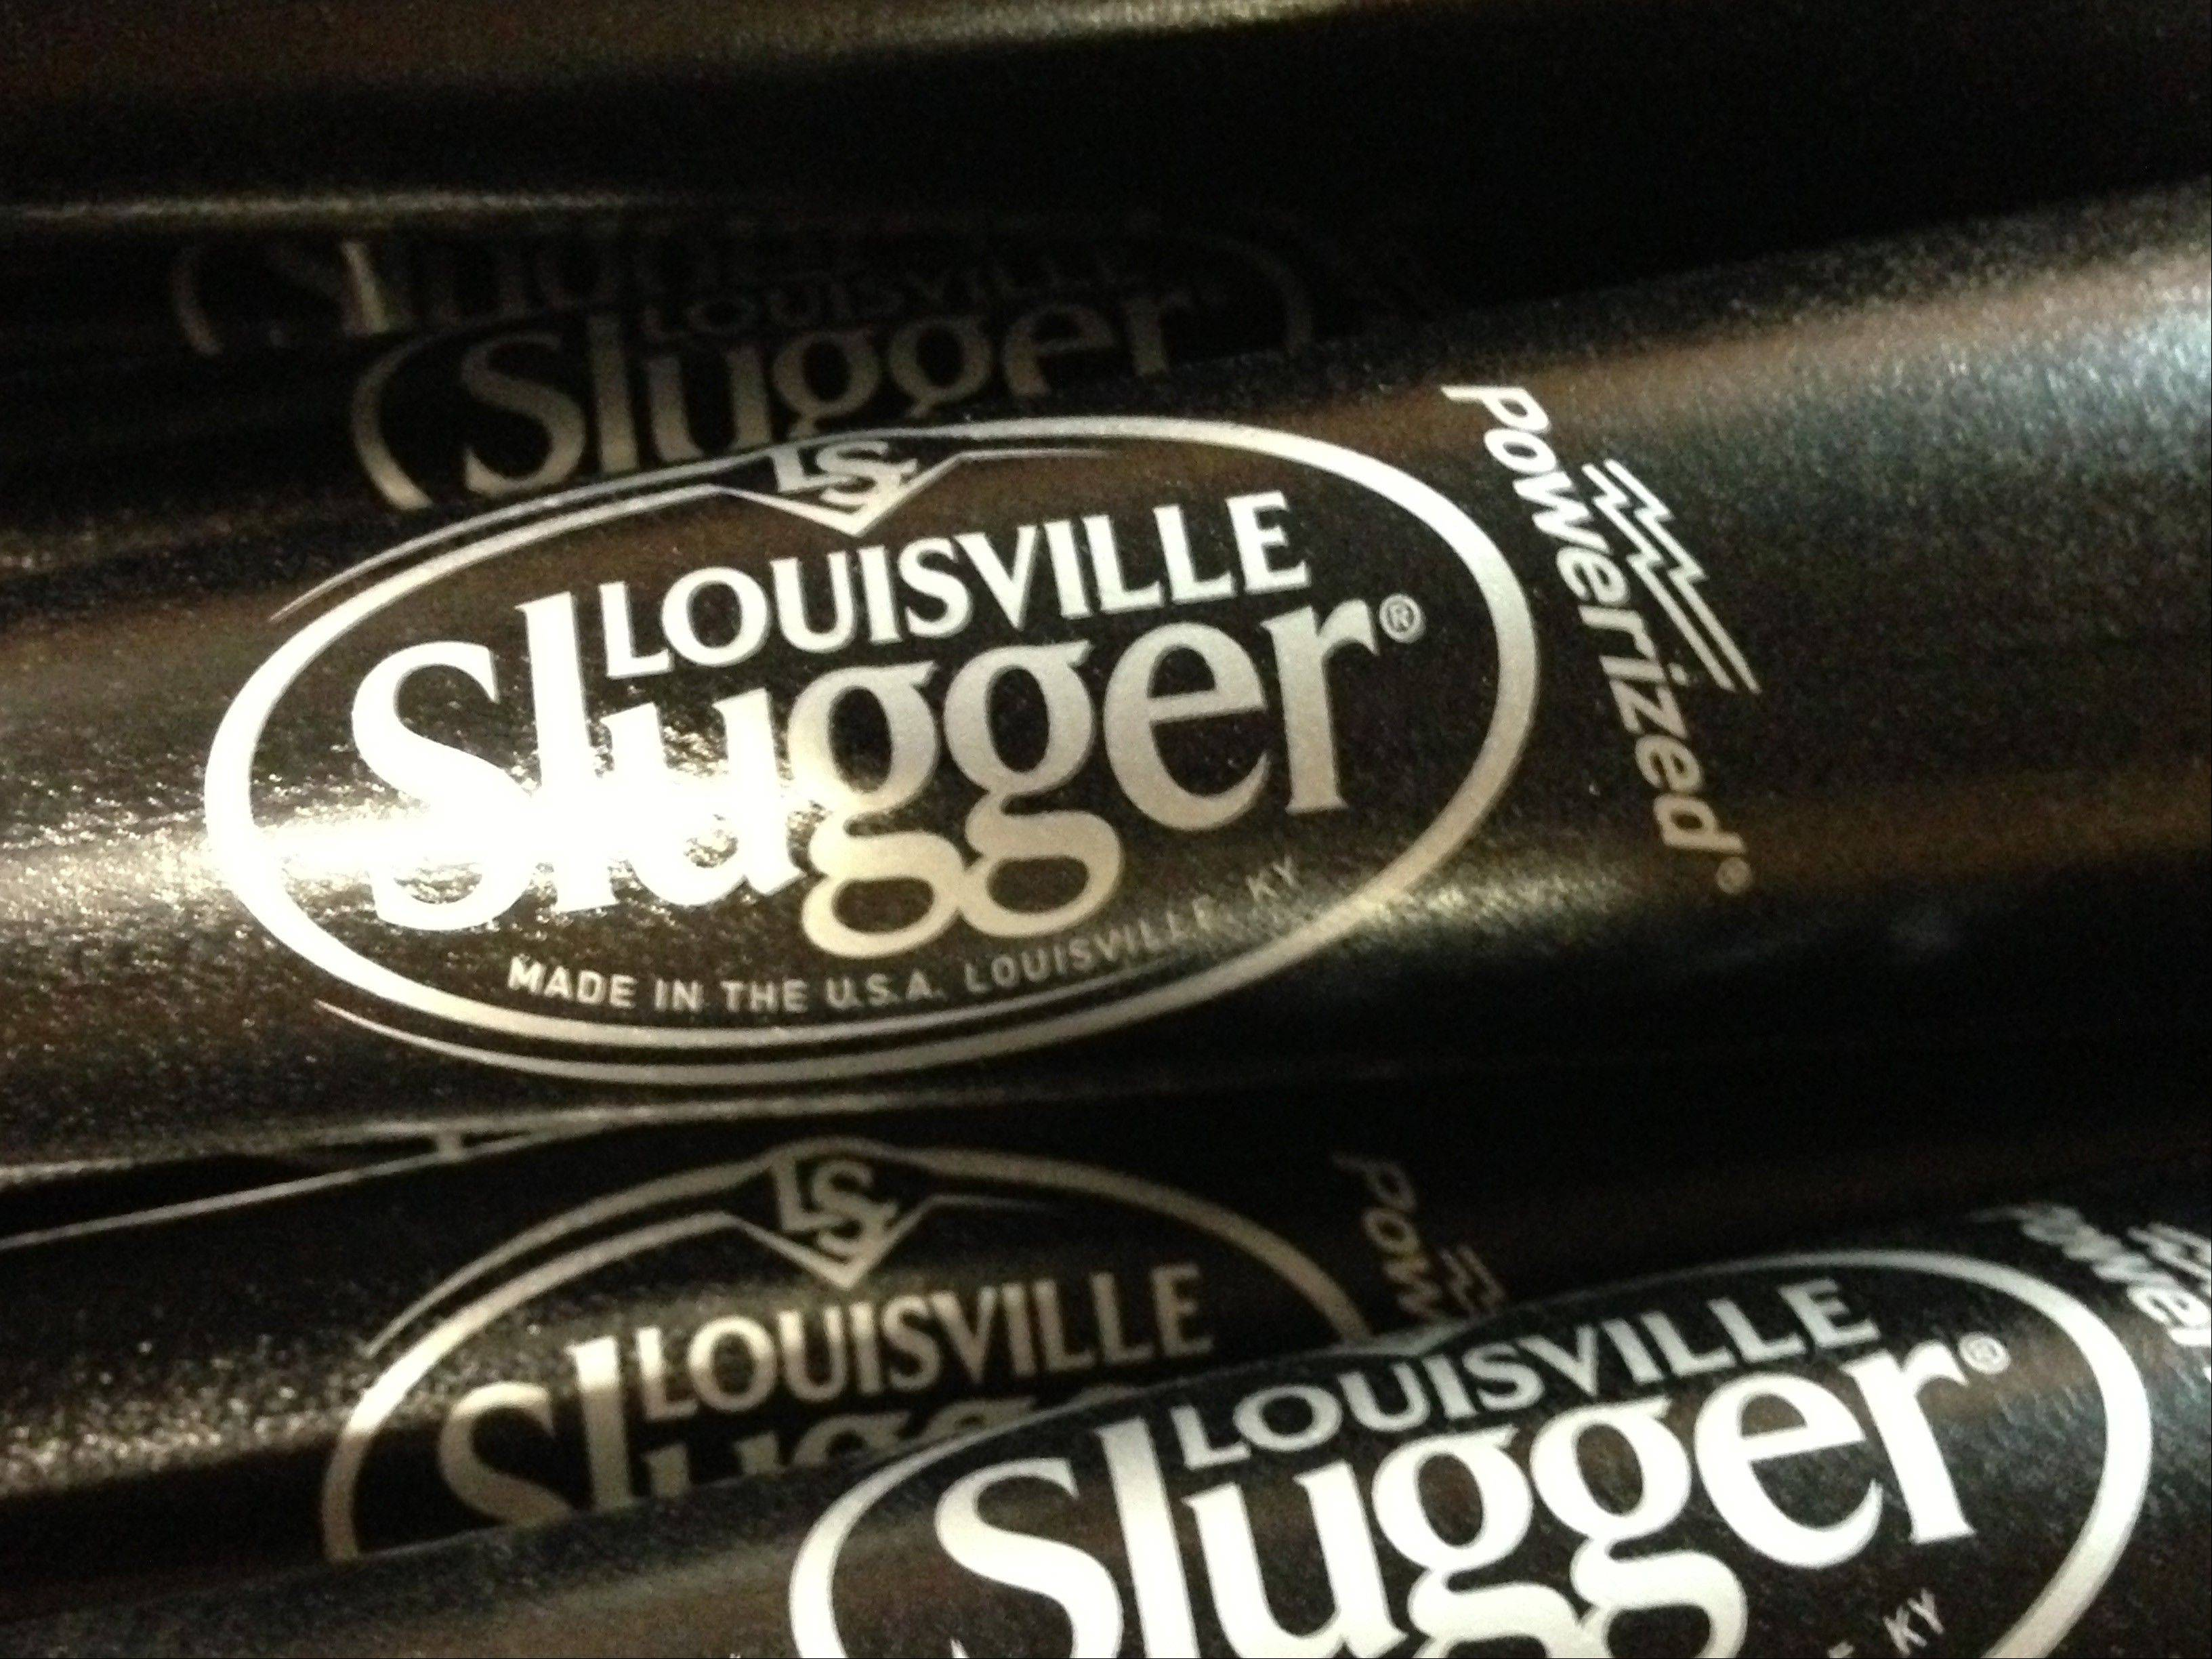 Louisville Slugger is rolling out a new logo for the first time in 33 years on a new bat that company officials say is designed to be the hardest wooden bat ever produced at the Louisville, Ky., factory.